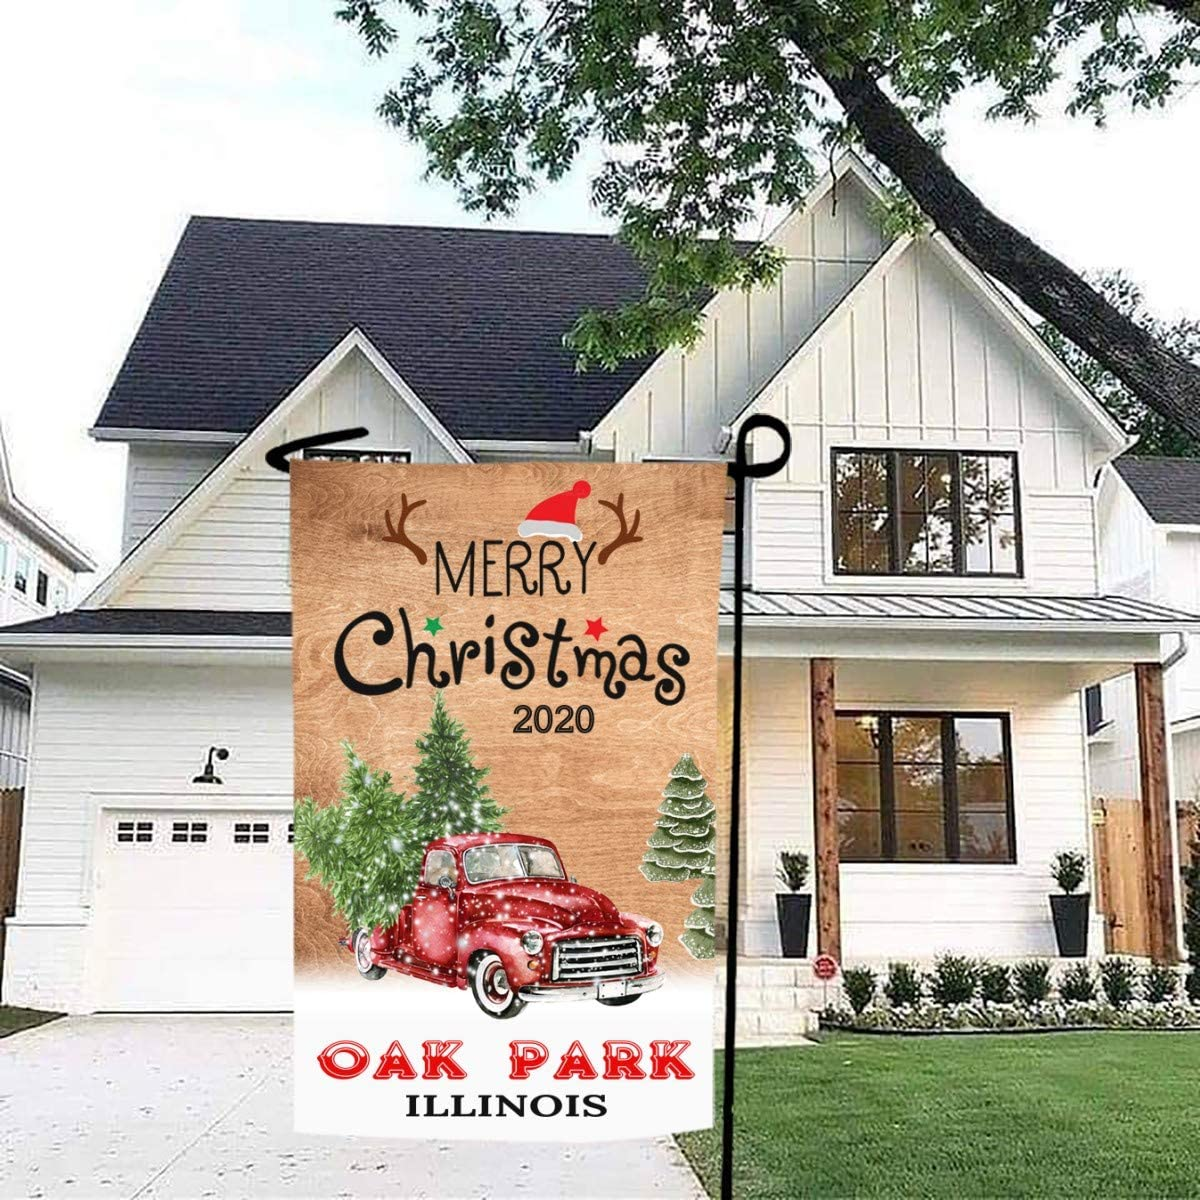 Merry Christmas Garden Flag Red Truck 2020 Oak Park Illinois State - Rustic Winter Garden Yard Decorations, Outdoor Flag 12x18 Inch Double-Sided for Home, Garden (Not Included Stand)